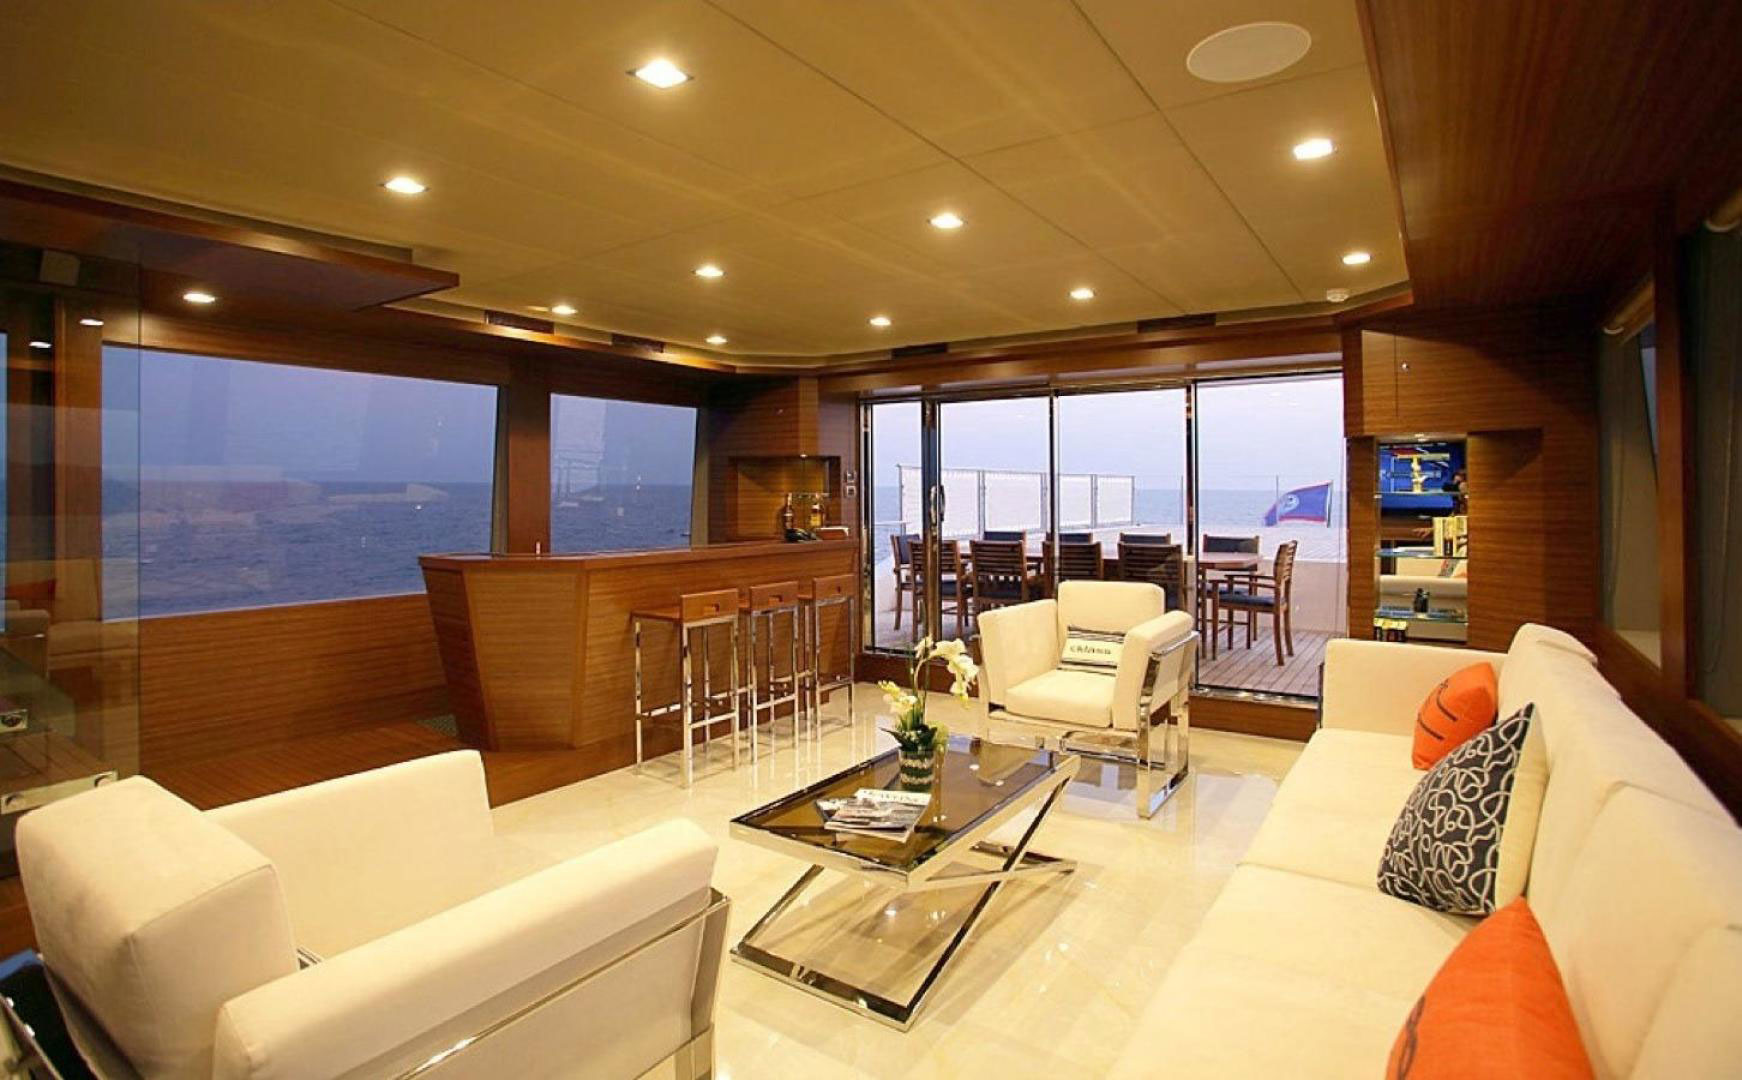 150-ft.-Luxury-Power-Yacht-–-Up-to-200-People-interior